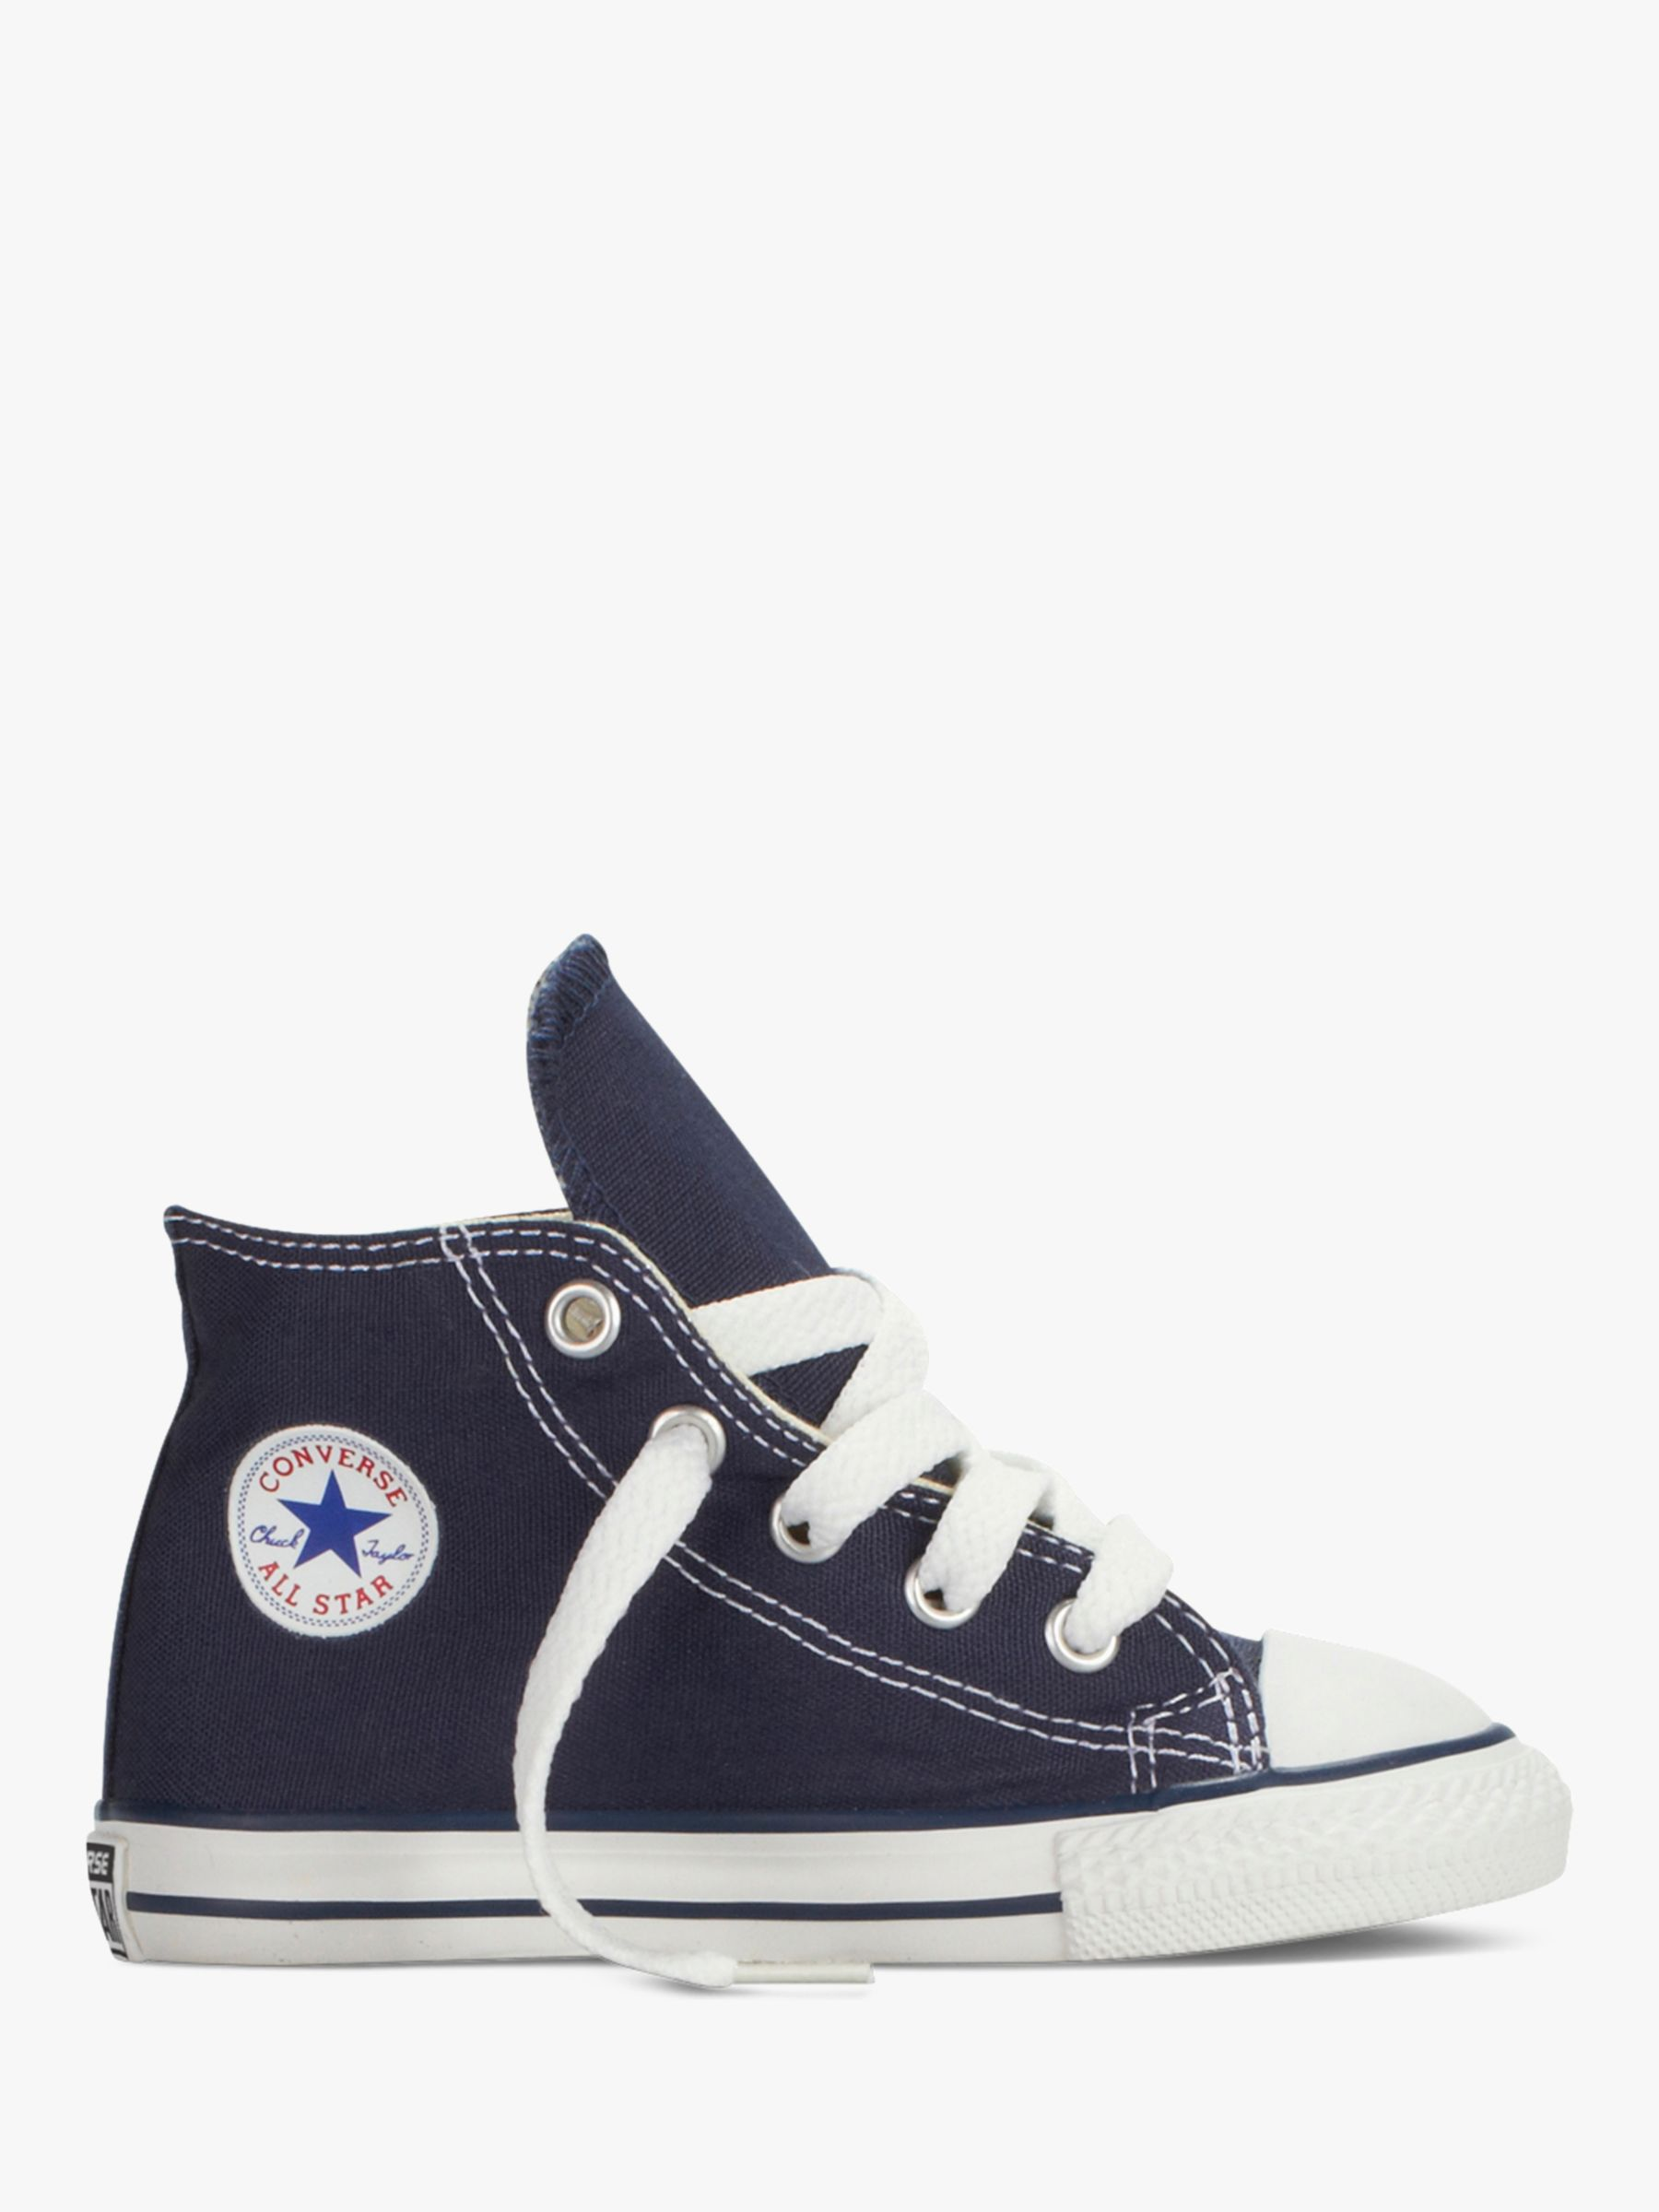 b90723f3a209 Converse Children s Chuck Taylor All Star Core Hi-Top Trainers at ...